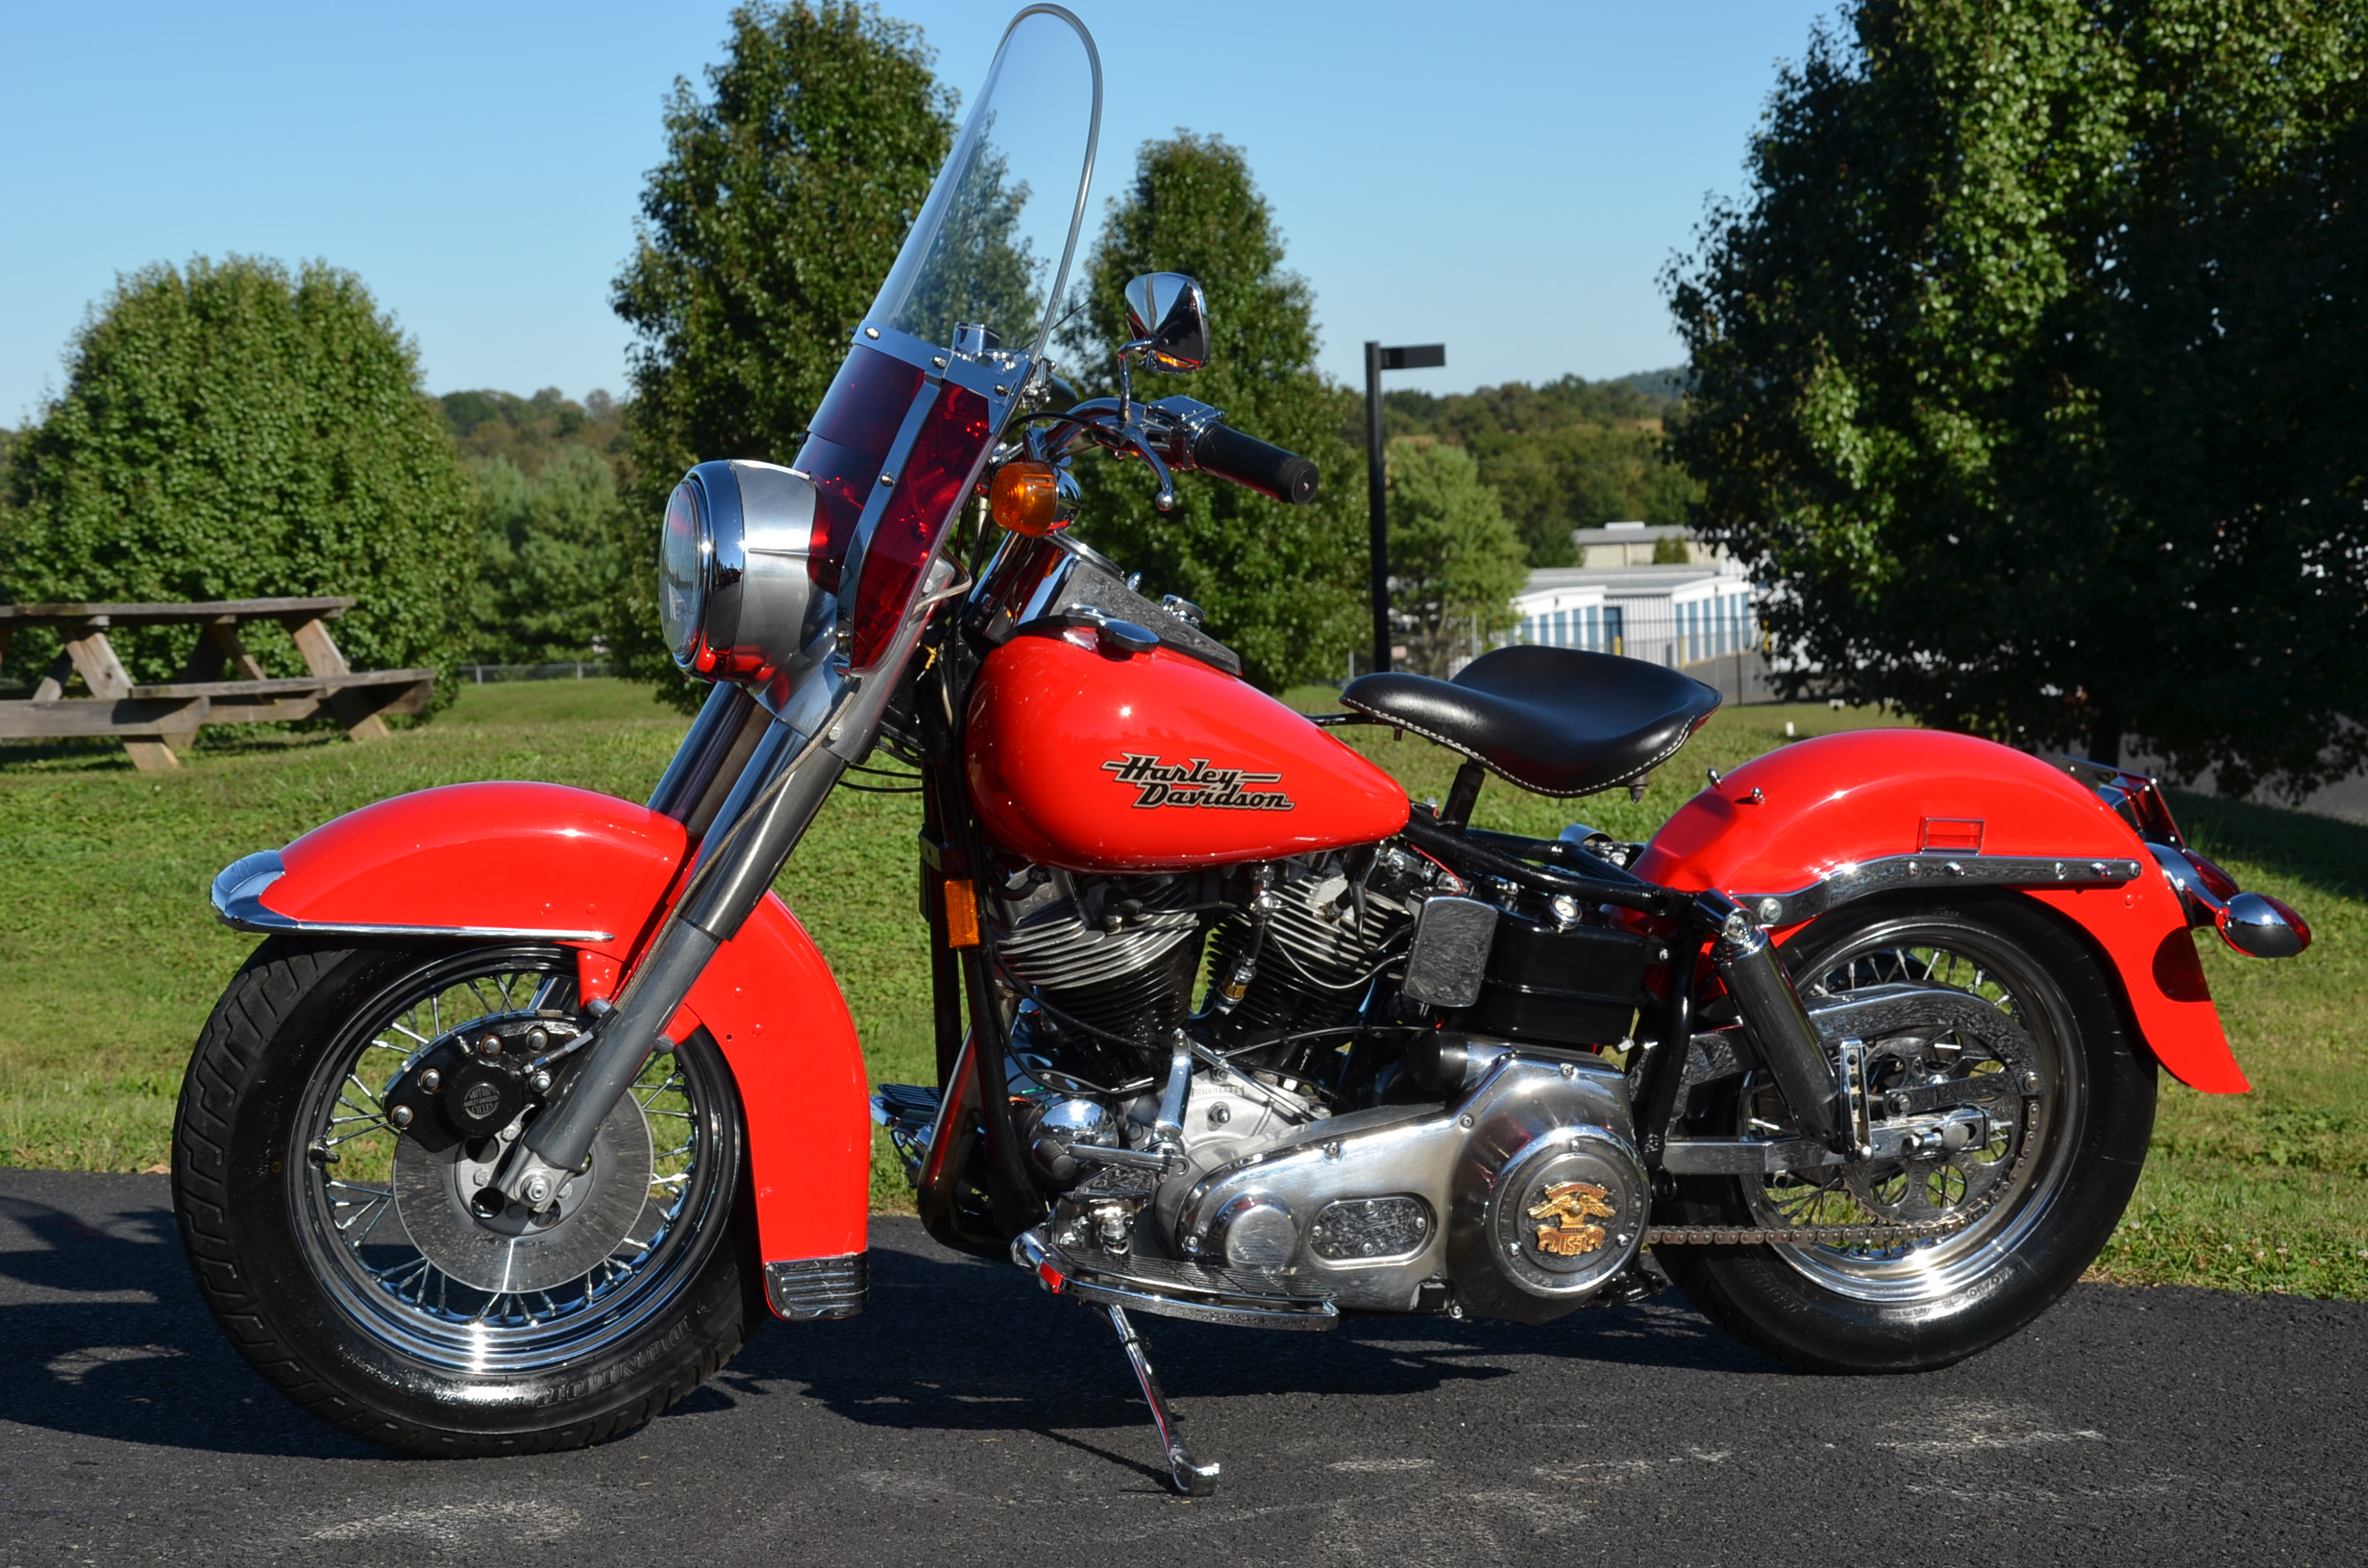 1969 RED HARLEY DAVIDSON FLH ELECTRA GLIDE for sale on 2040